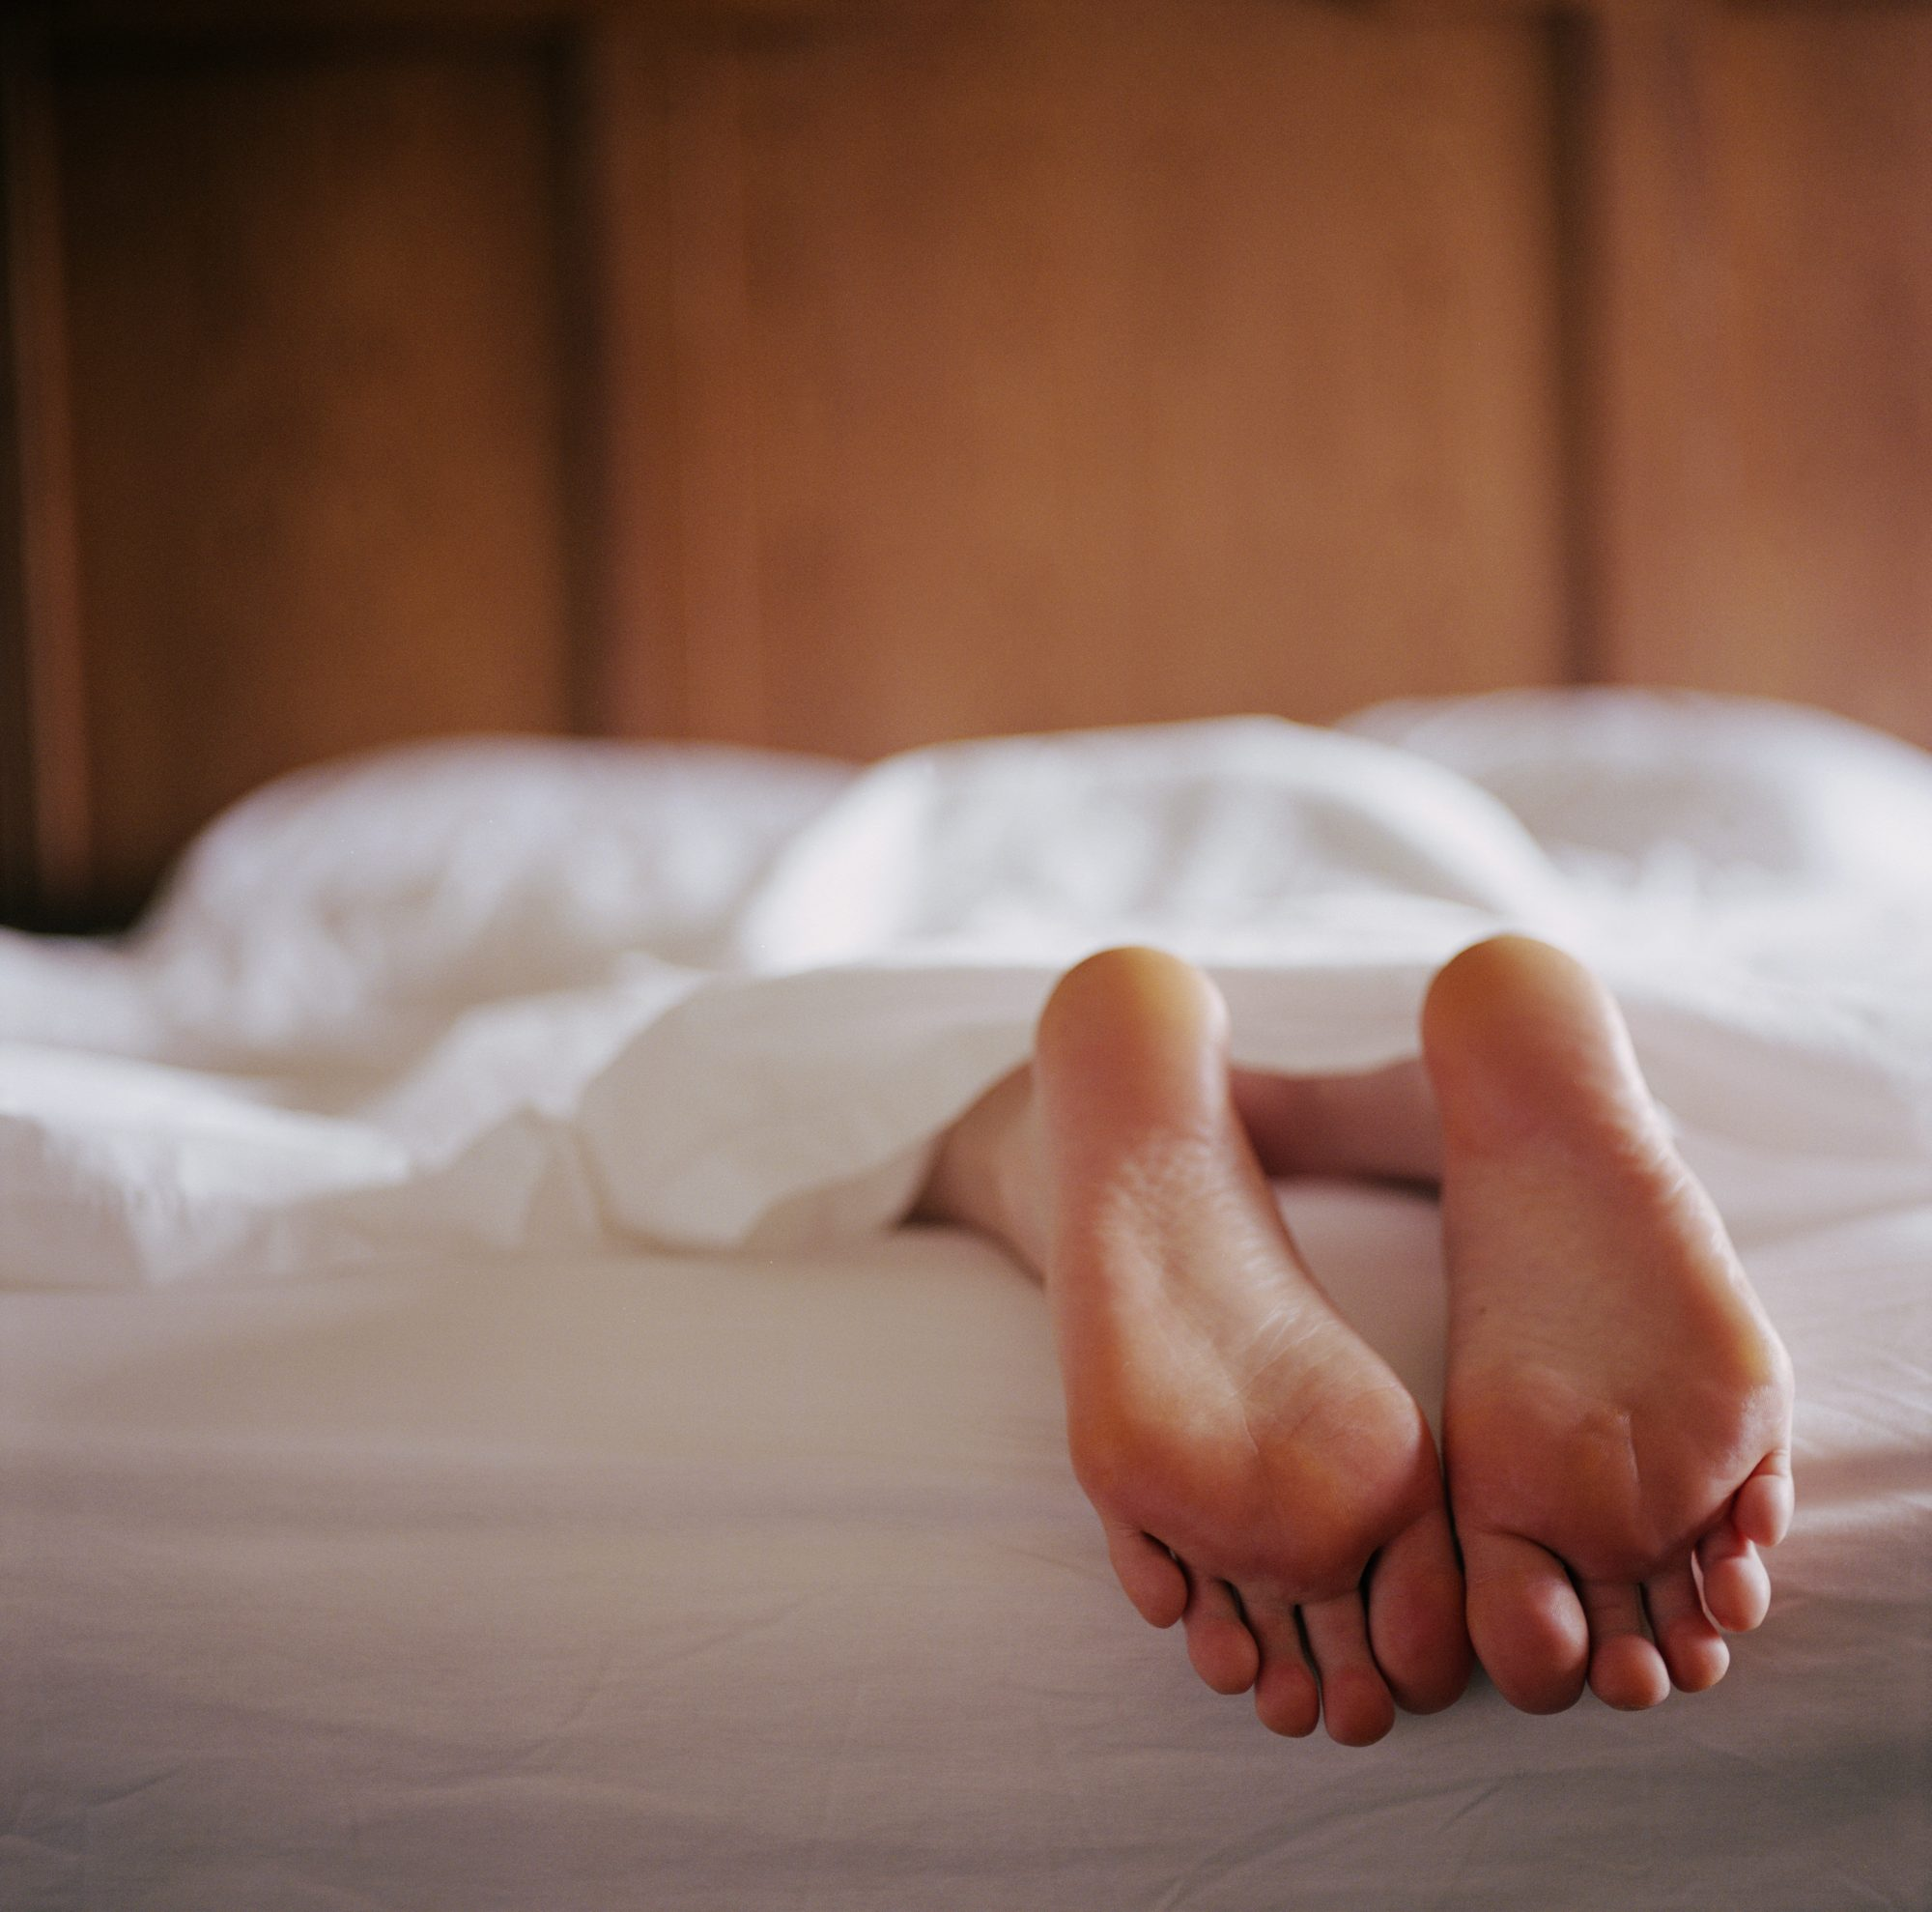 woman sticking foot out of bed